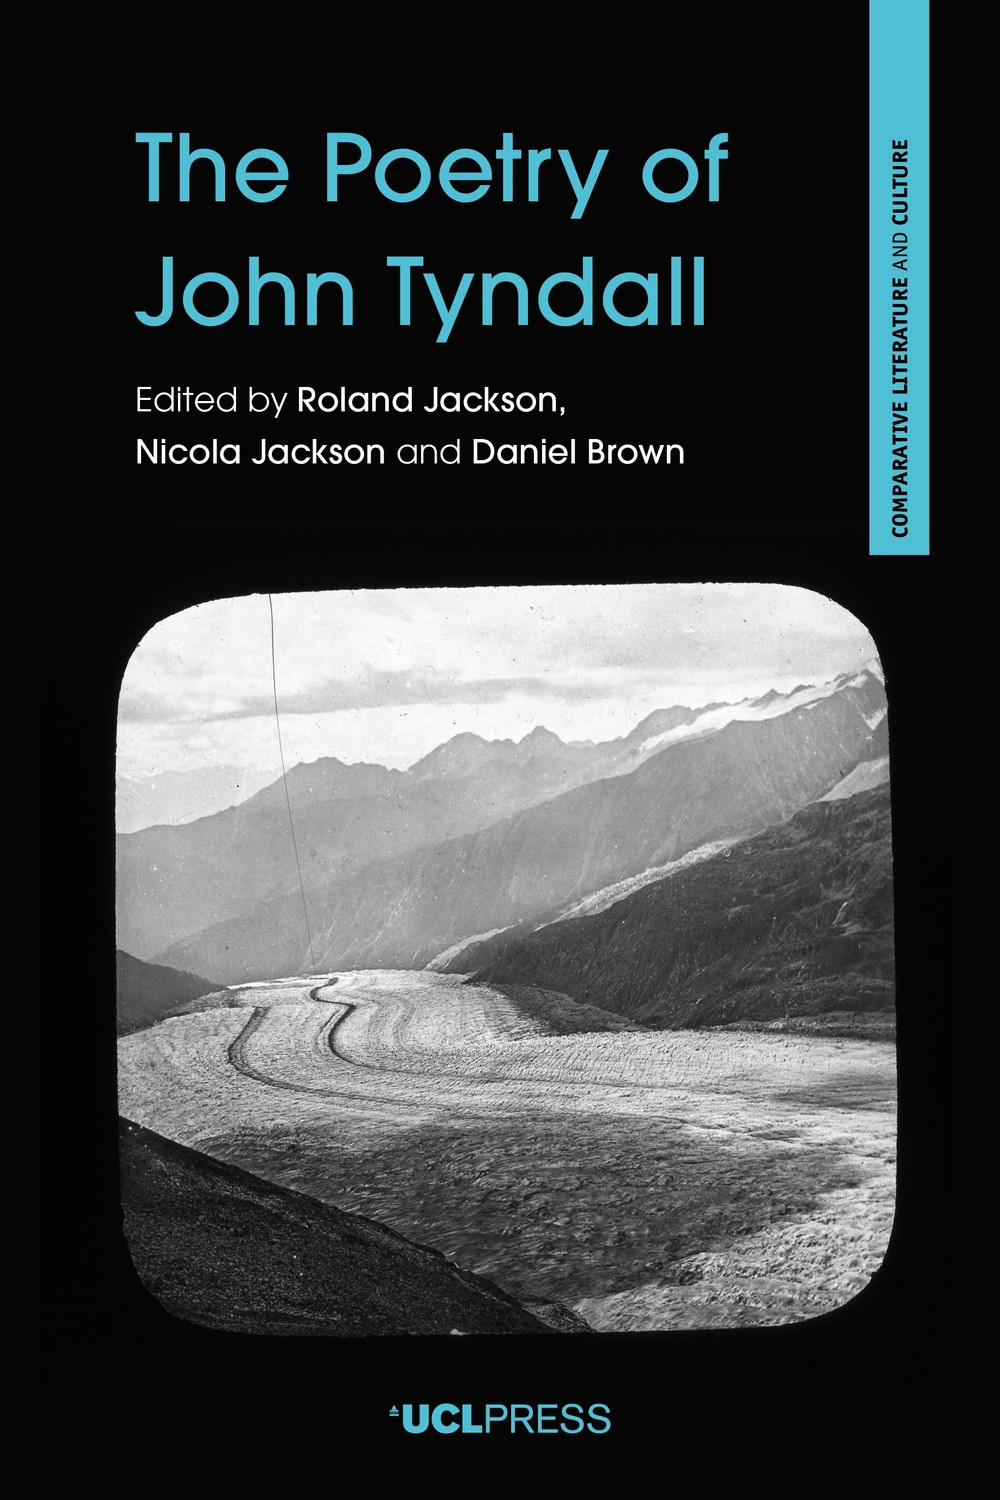 The Poetry of John Tyndall